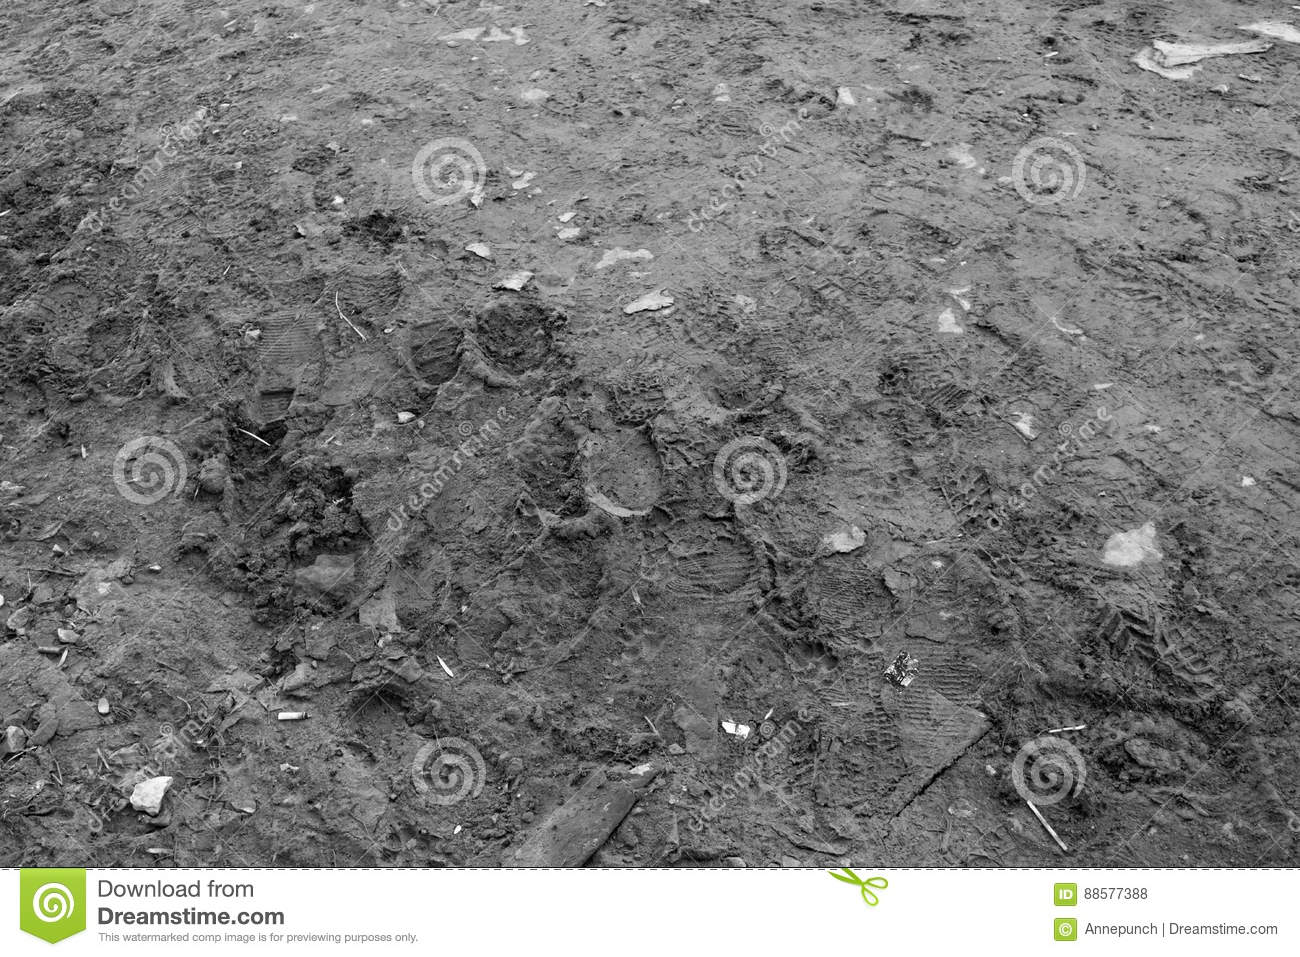 Texture of earth with garbage and footprints.